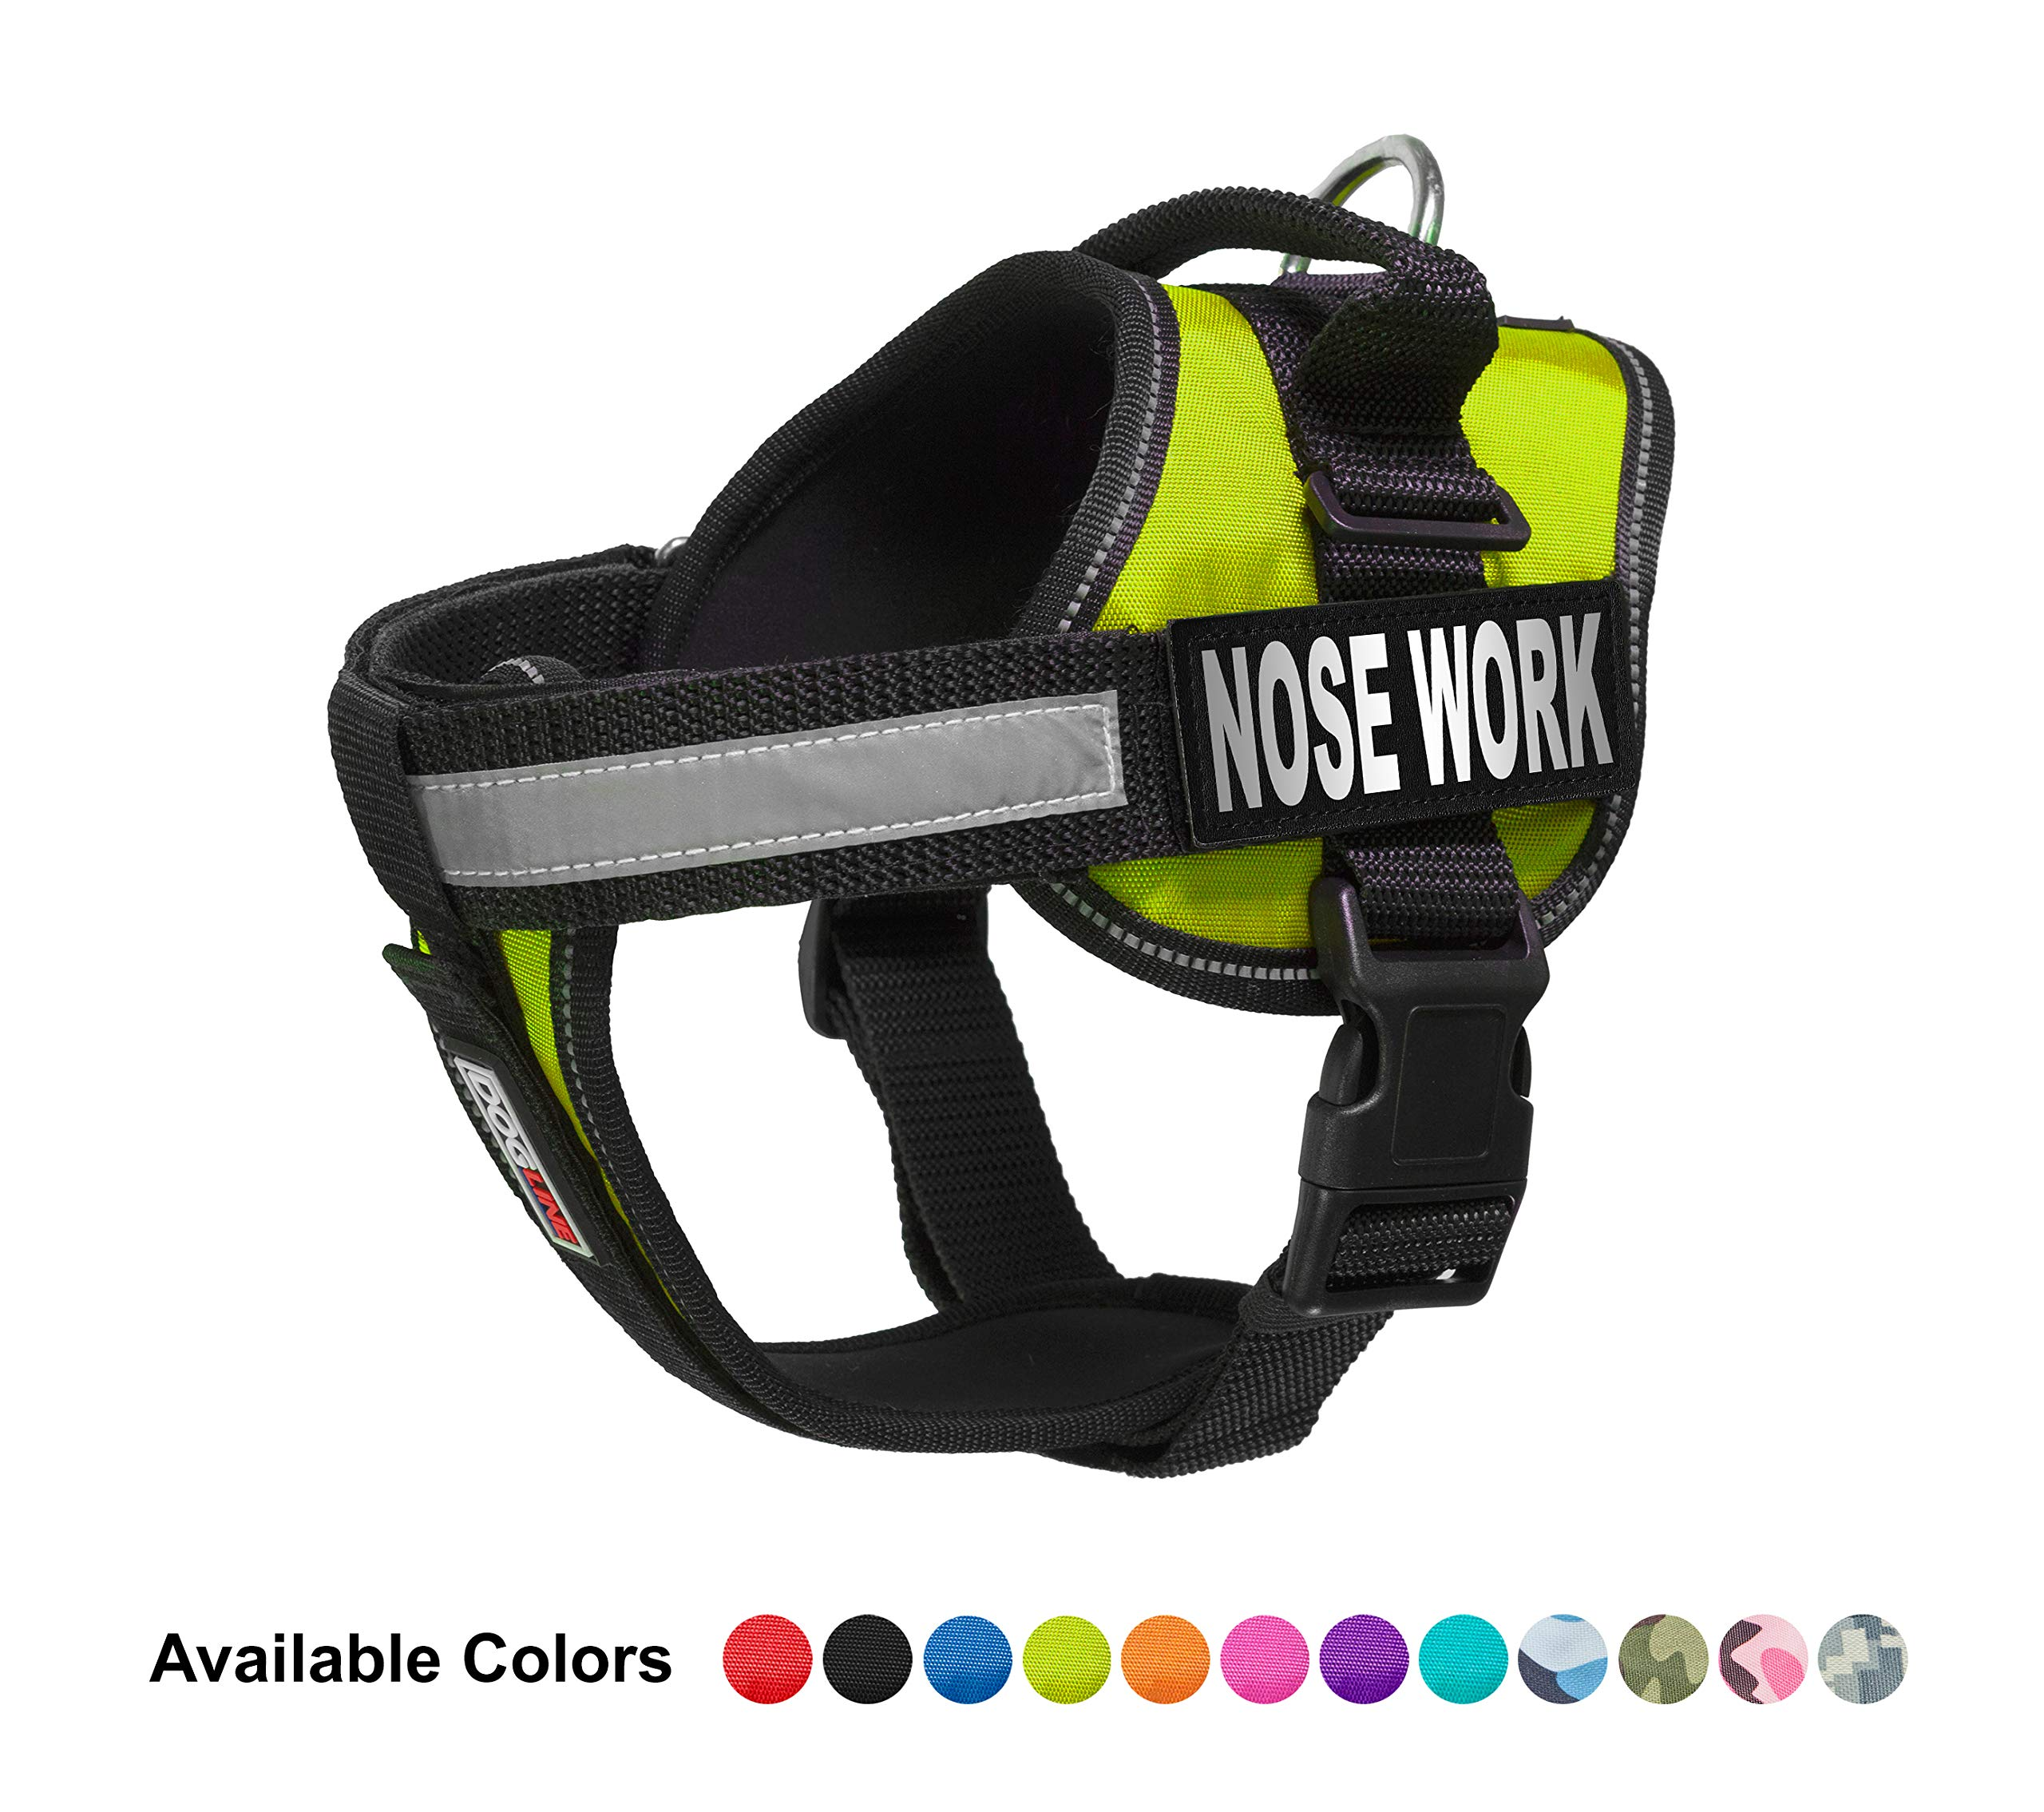 Dogline Vest Harness for Dogs and 2 Removable Nose Work Patches, X-Large/36 to 46'', Green